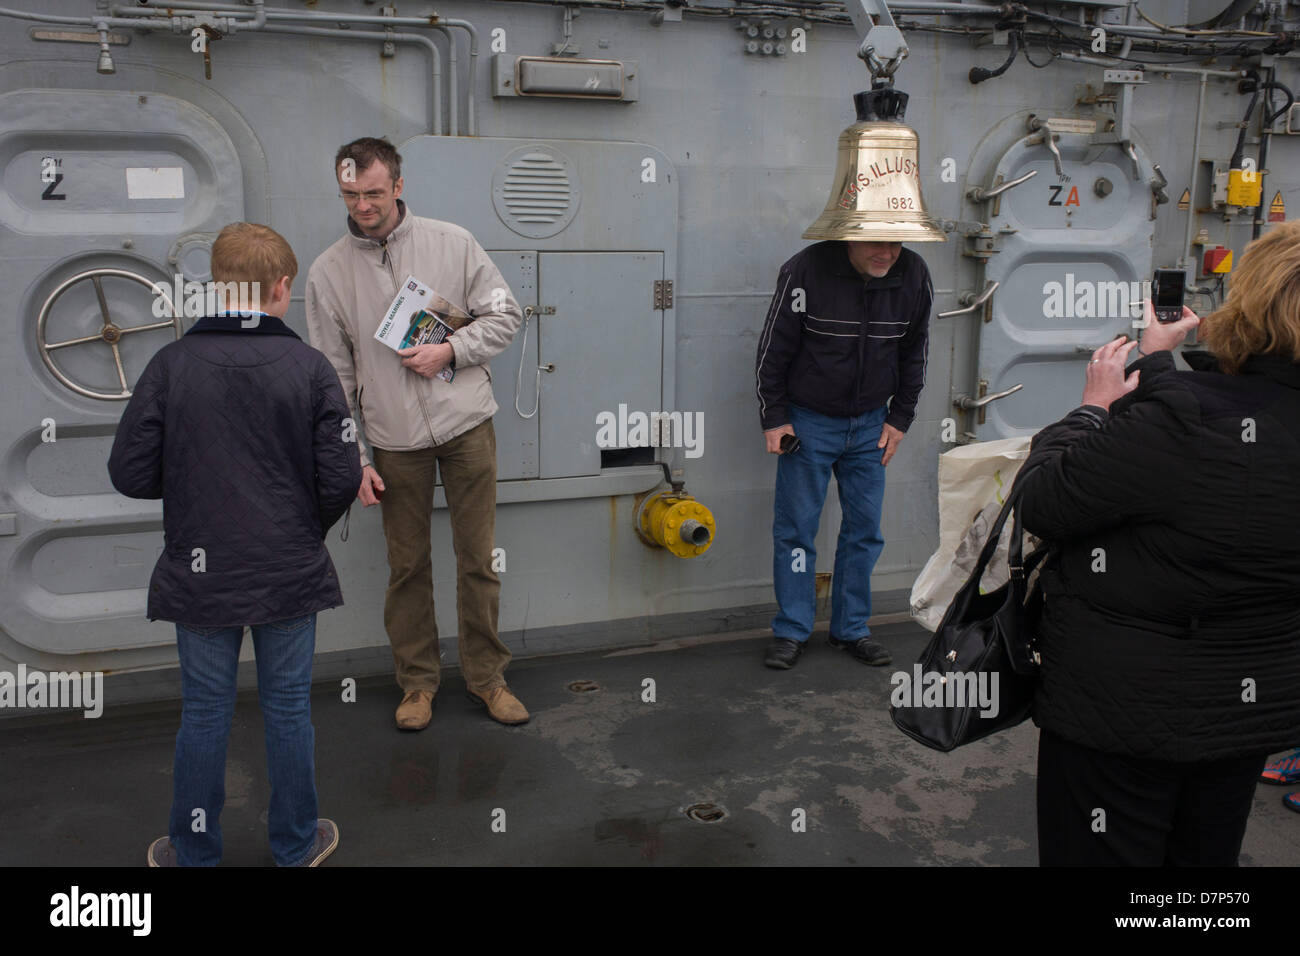 Visitors admire the ship's bell while touring the top deck on-board the Royal Navy's aircraft carrier HMS - Stock Image